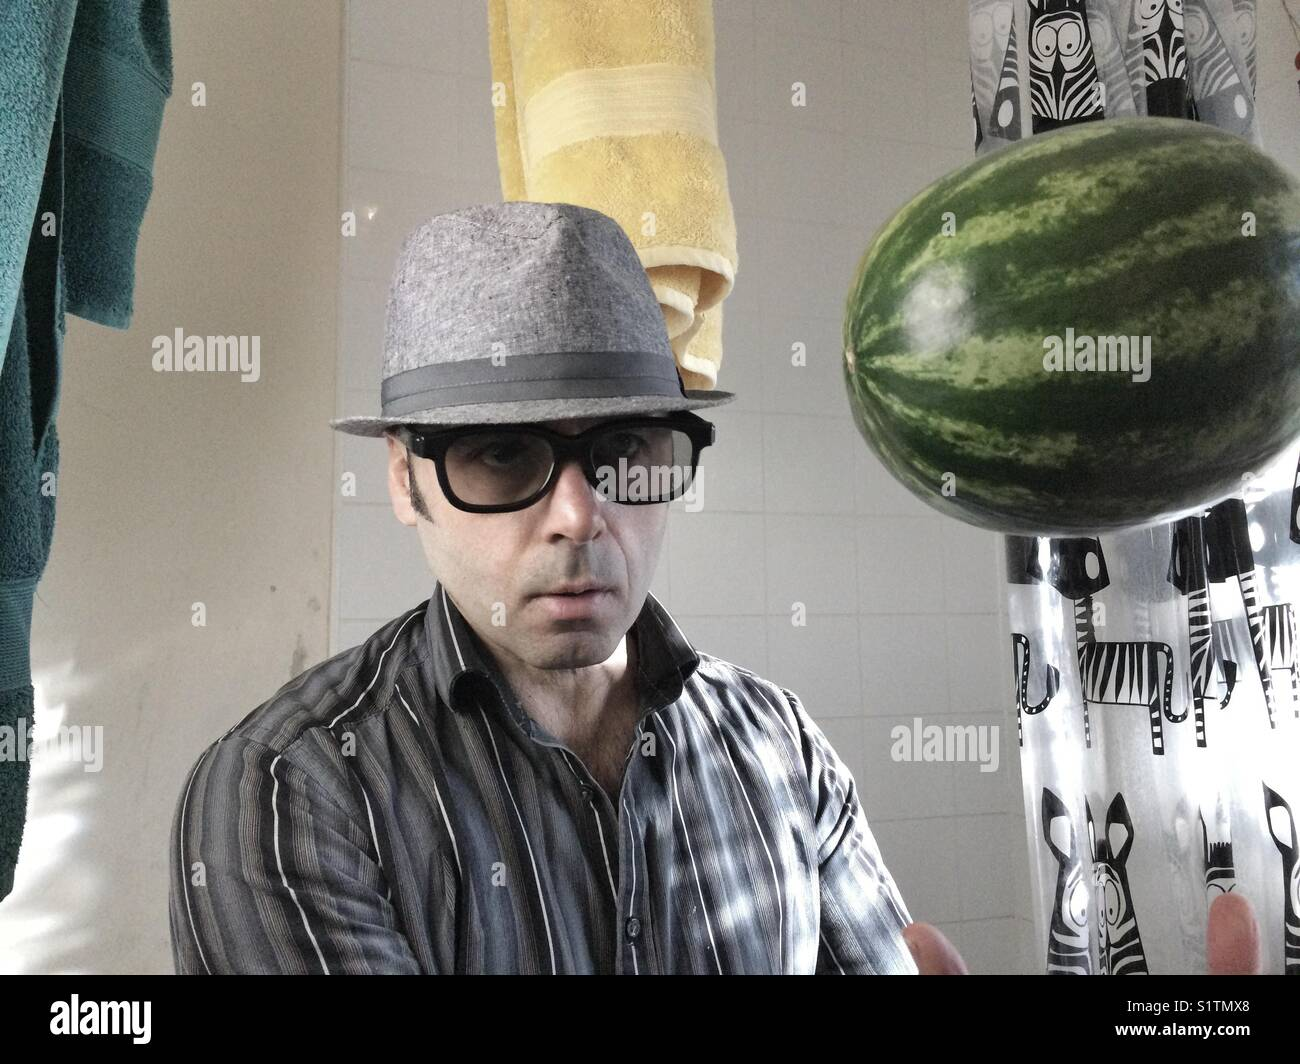 Portrait of man with dark glasses and hat in toilet with watermelon in the air - Stock Image